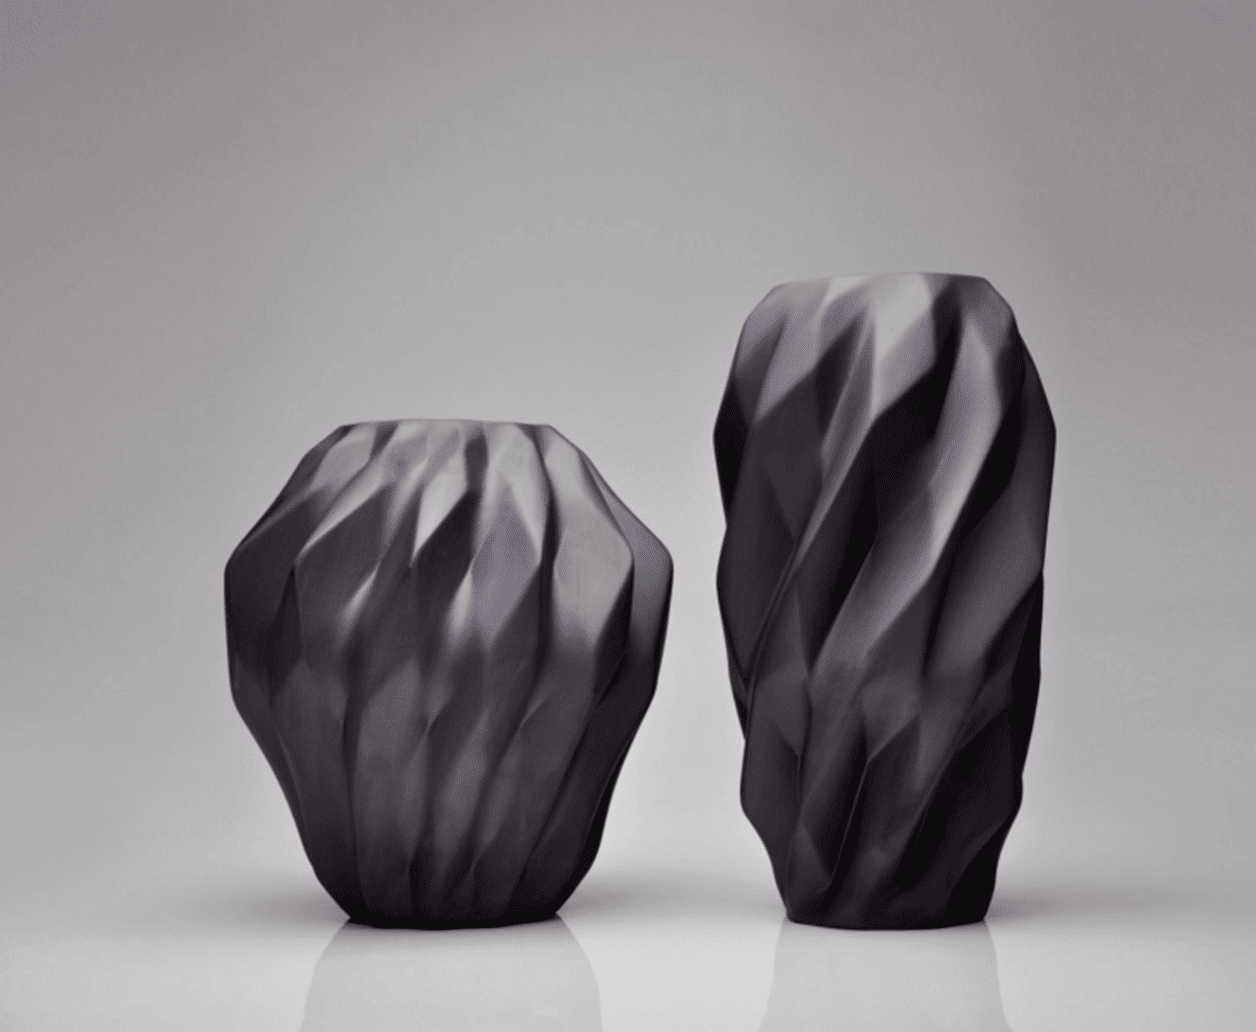 Plissan Geometrical Series vases from Holaria and Kerampozellan; photo from Maison&Objet